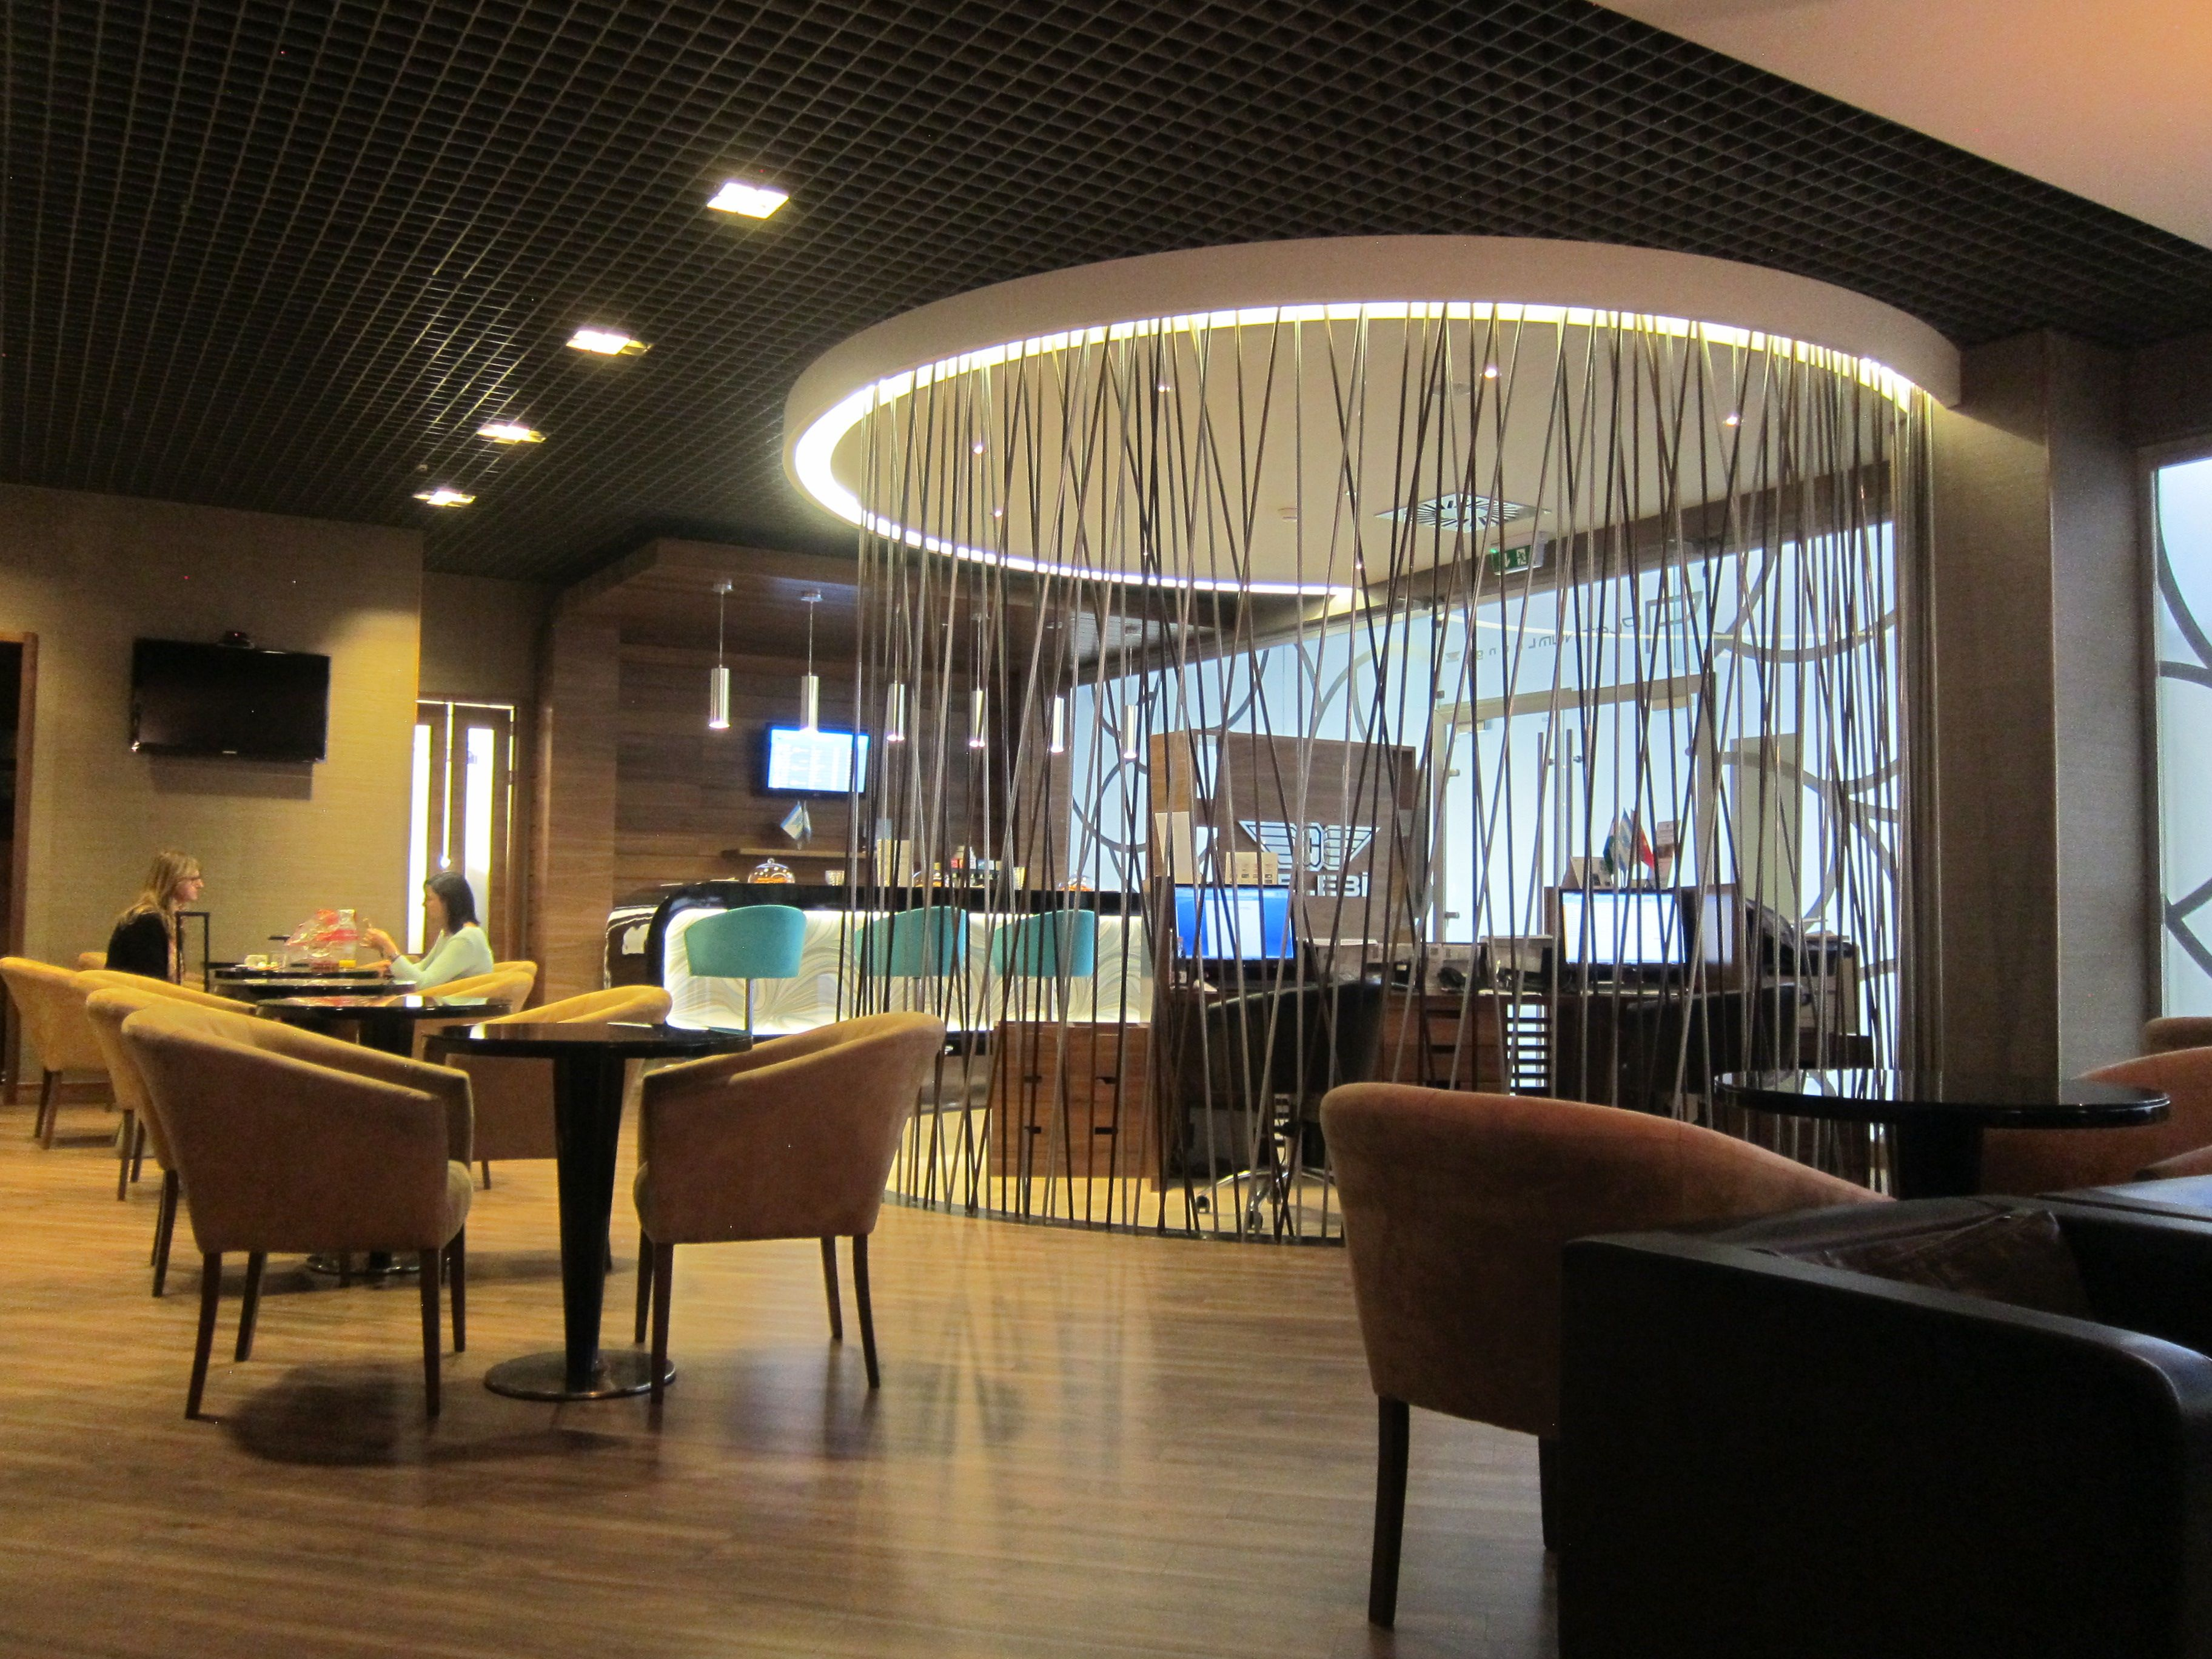 Budapest Airport Lounge17